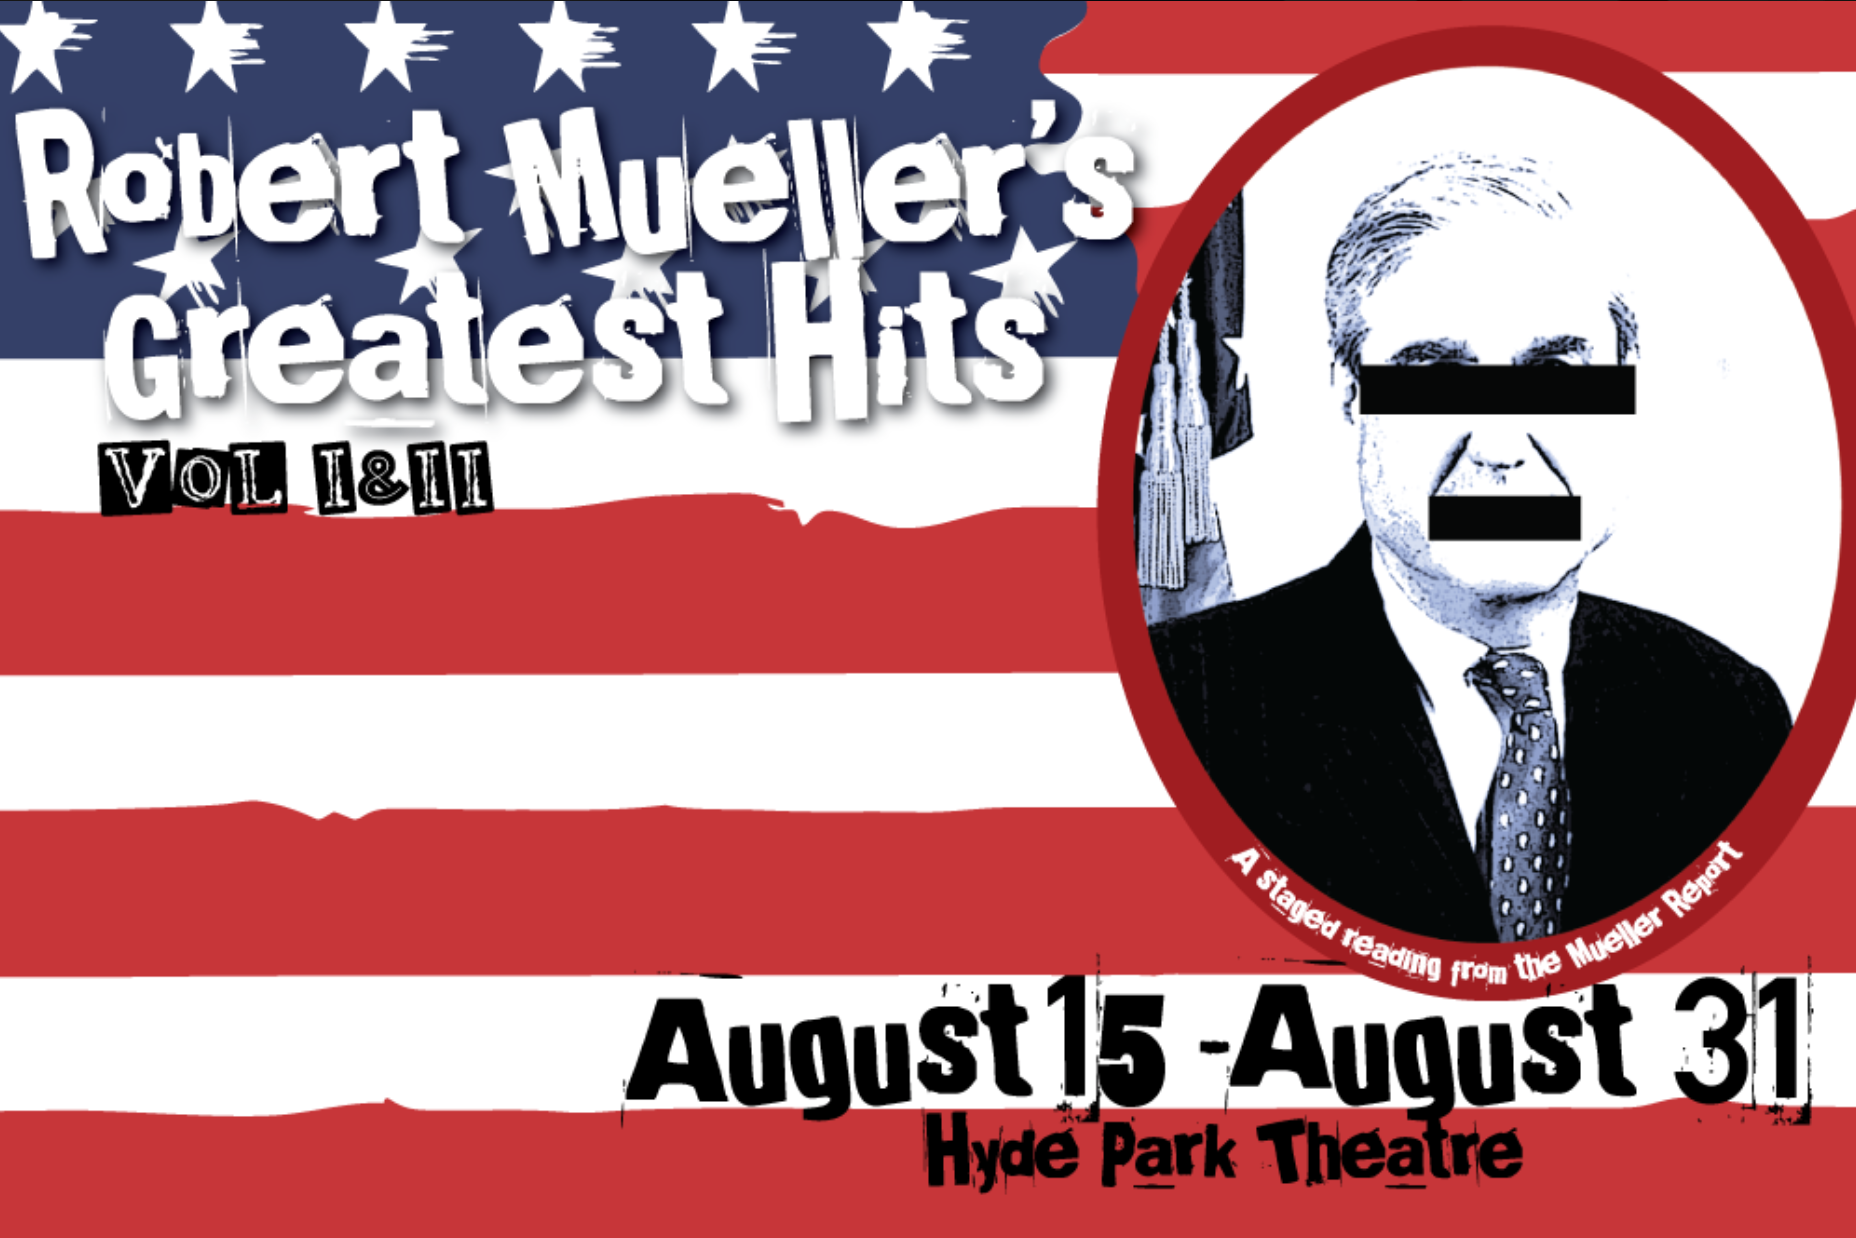 Robert Mueller's Greatest Hits, Vols. I and II by Capital T Theatre